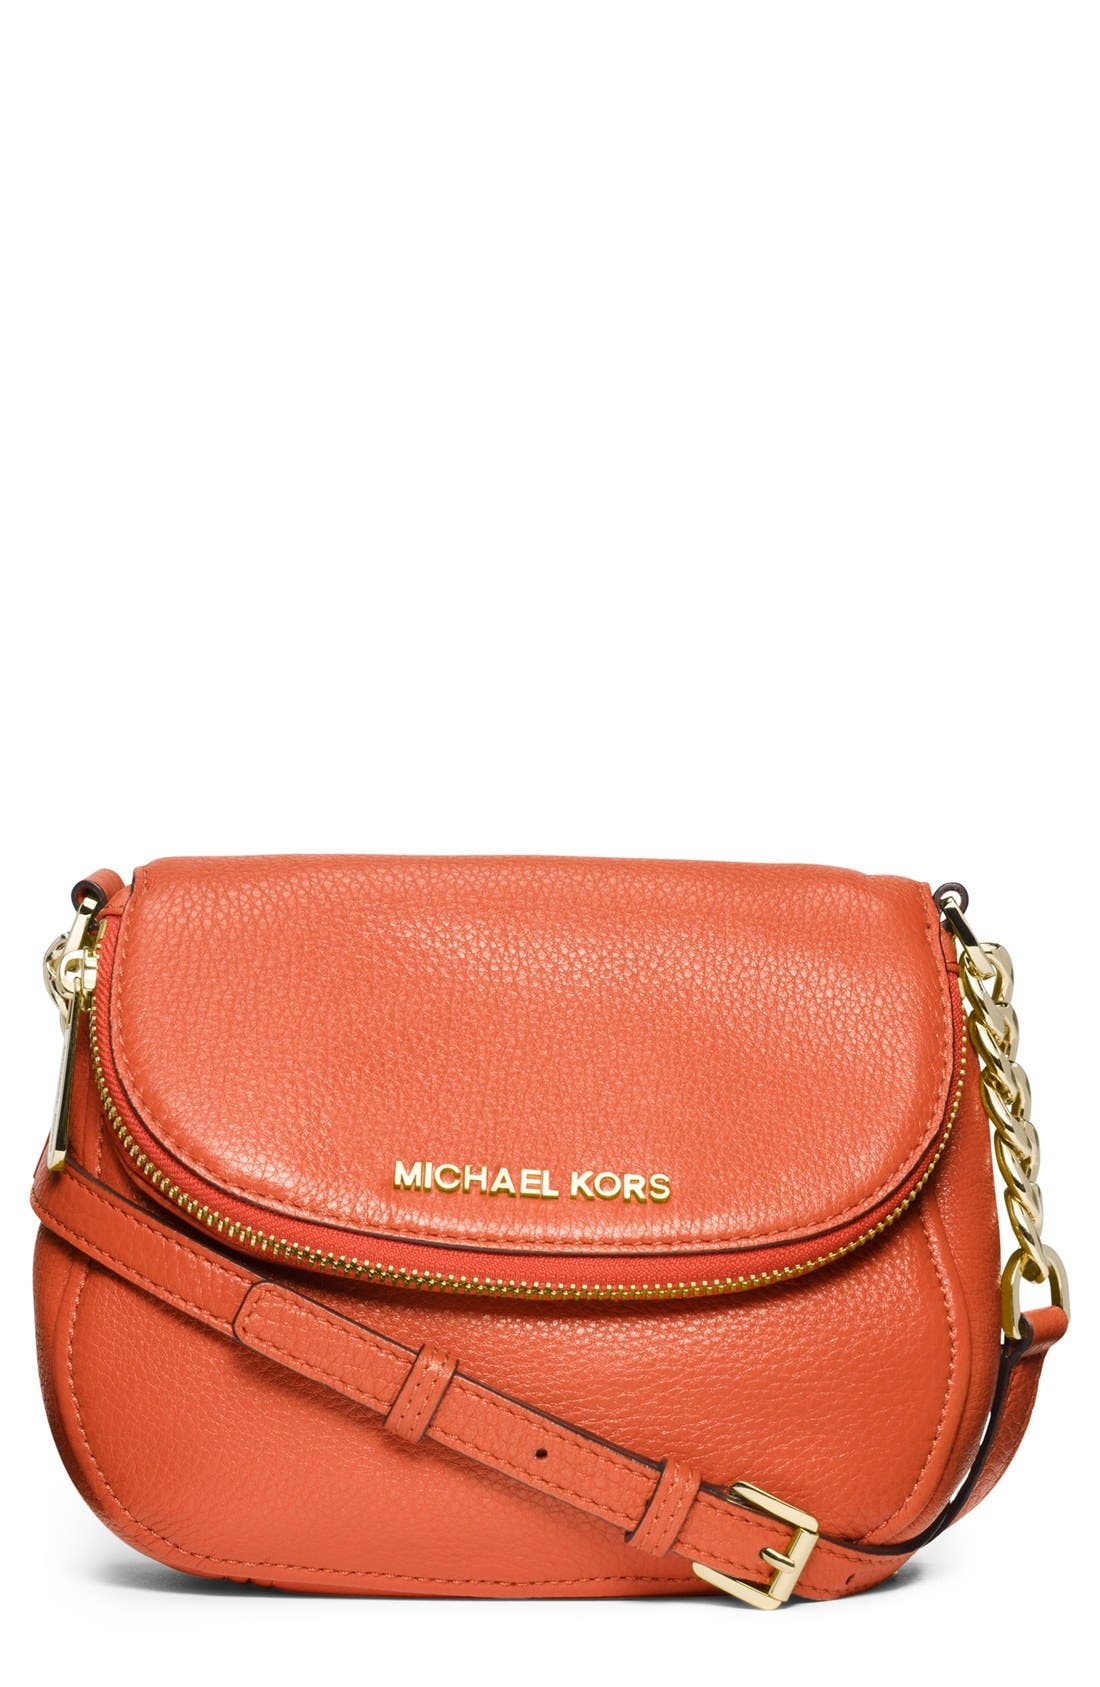 Alternate Image 1 Selected - MICHAEL Michael Kors 'Bedford' Leather Crossbody